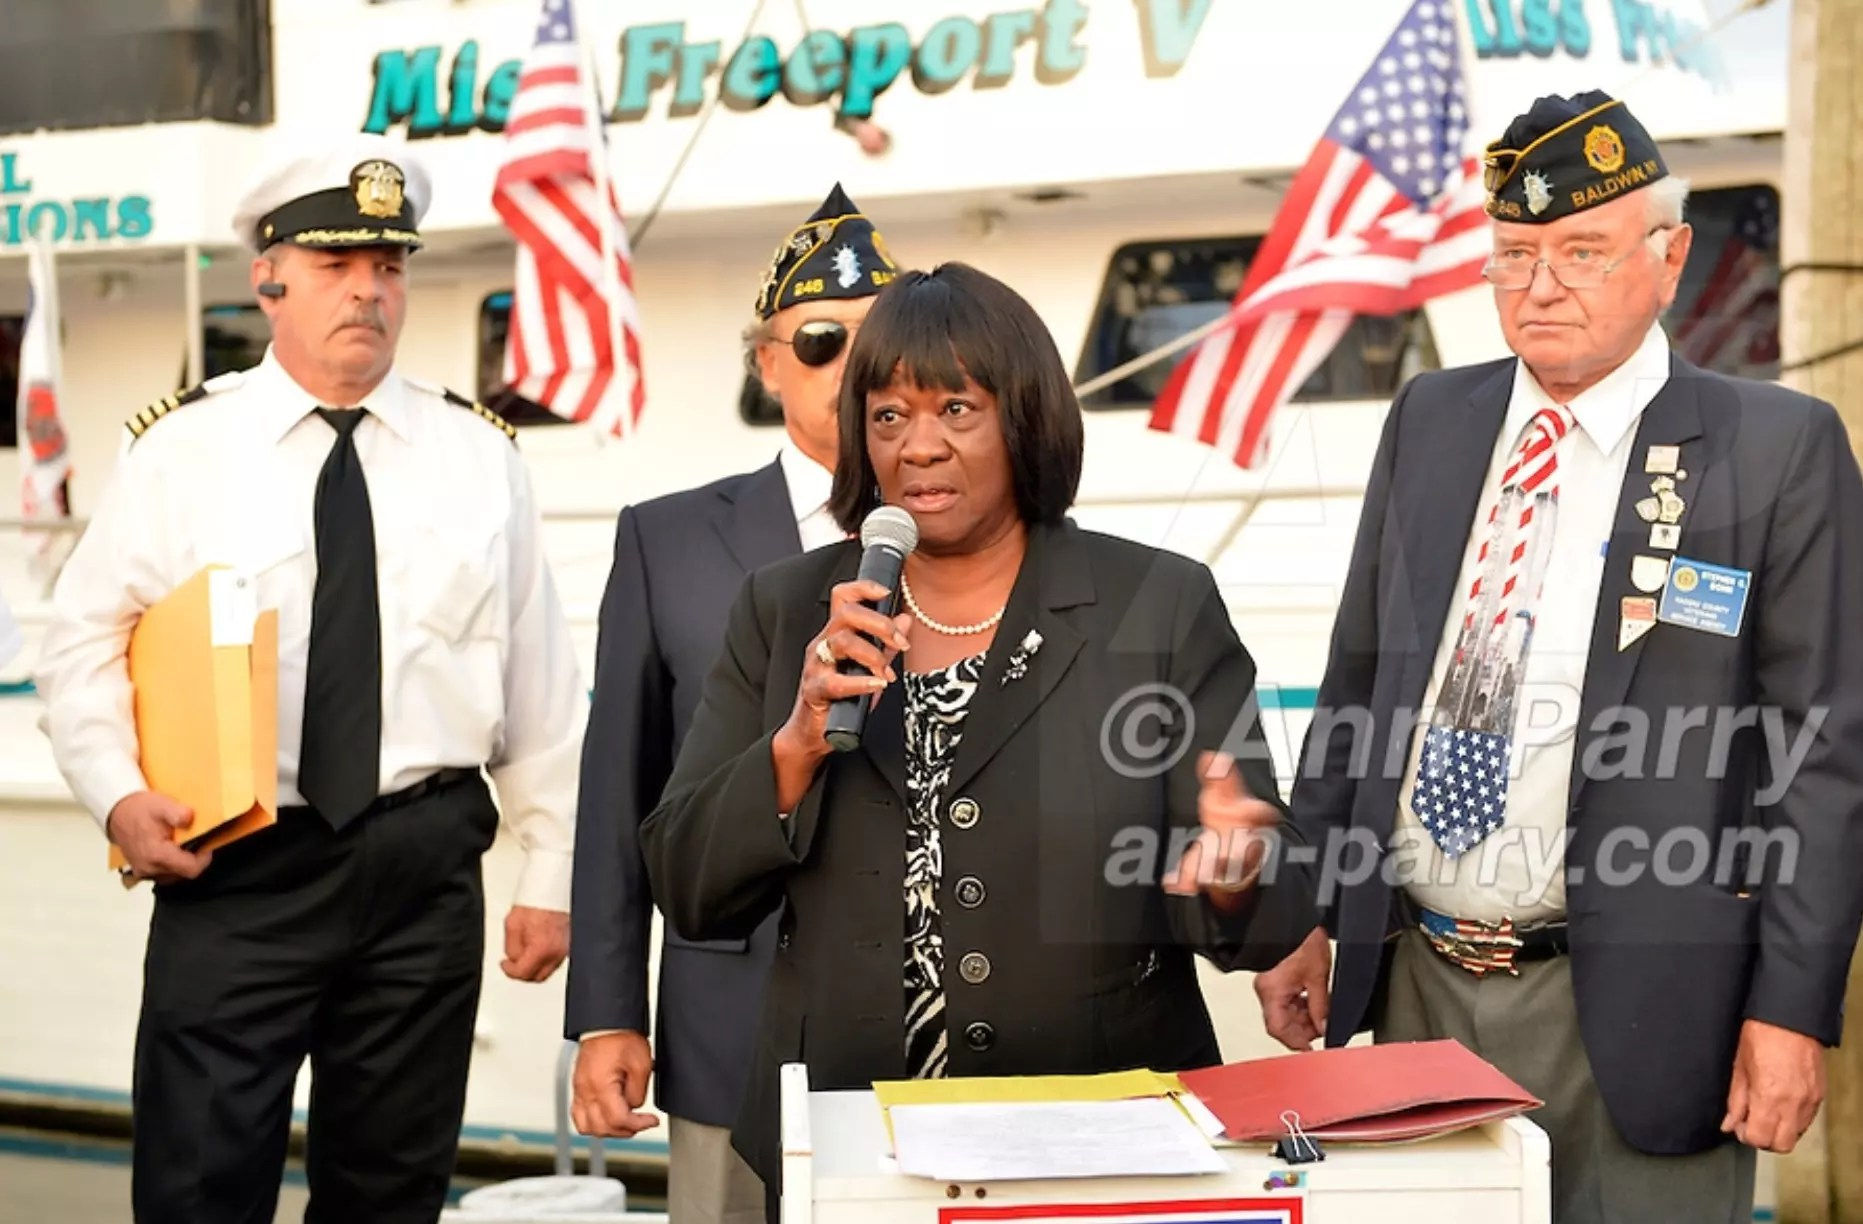 Freeport, New York, USA. September 10, 2014. DOROTHY GOOSBY, Town of Hempstead Councilwoman, speaks at a dockside remembrance ceremony in honor of victims of the terrorist attacks of September 11 2001, at the boat Miss Freeport V, on Freeport's Nautical Mile. Further ceremonies were held on board the vessel, which sailed from the Woodcleft Canal on the South Shore of Long Island, on the eve of the 13th Anniversary of the 9/11 attacks.